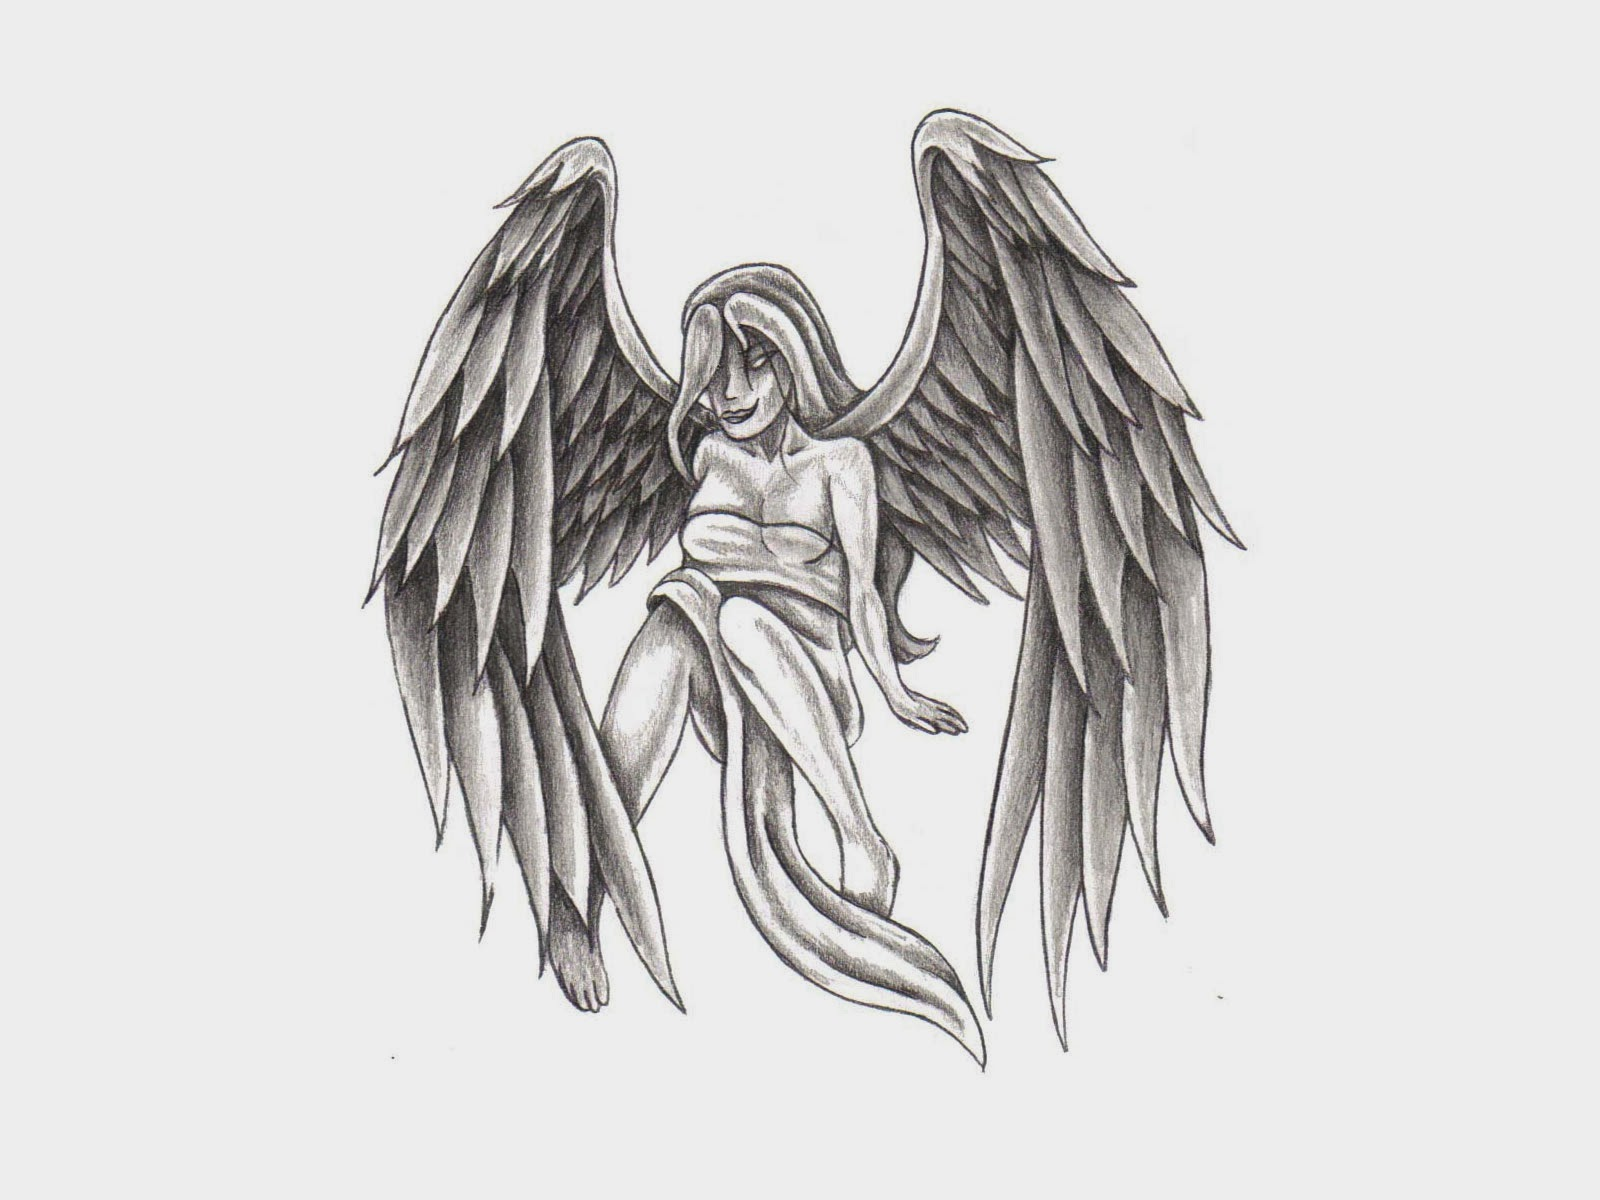 tattoo art most excellent images of angel wings tattoos. Black Bedroom Furniture Sets. Home Design Ideas